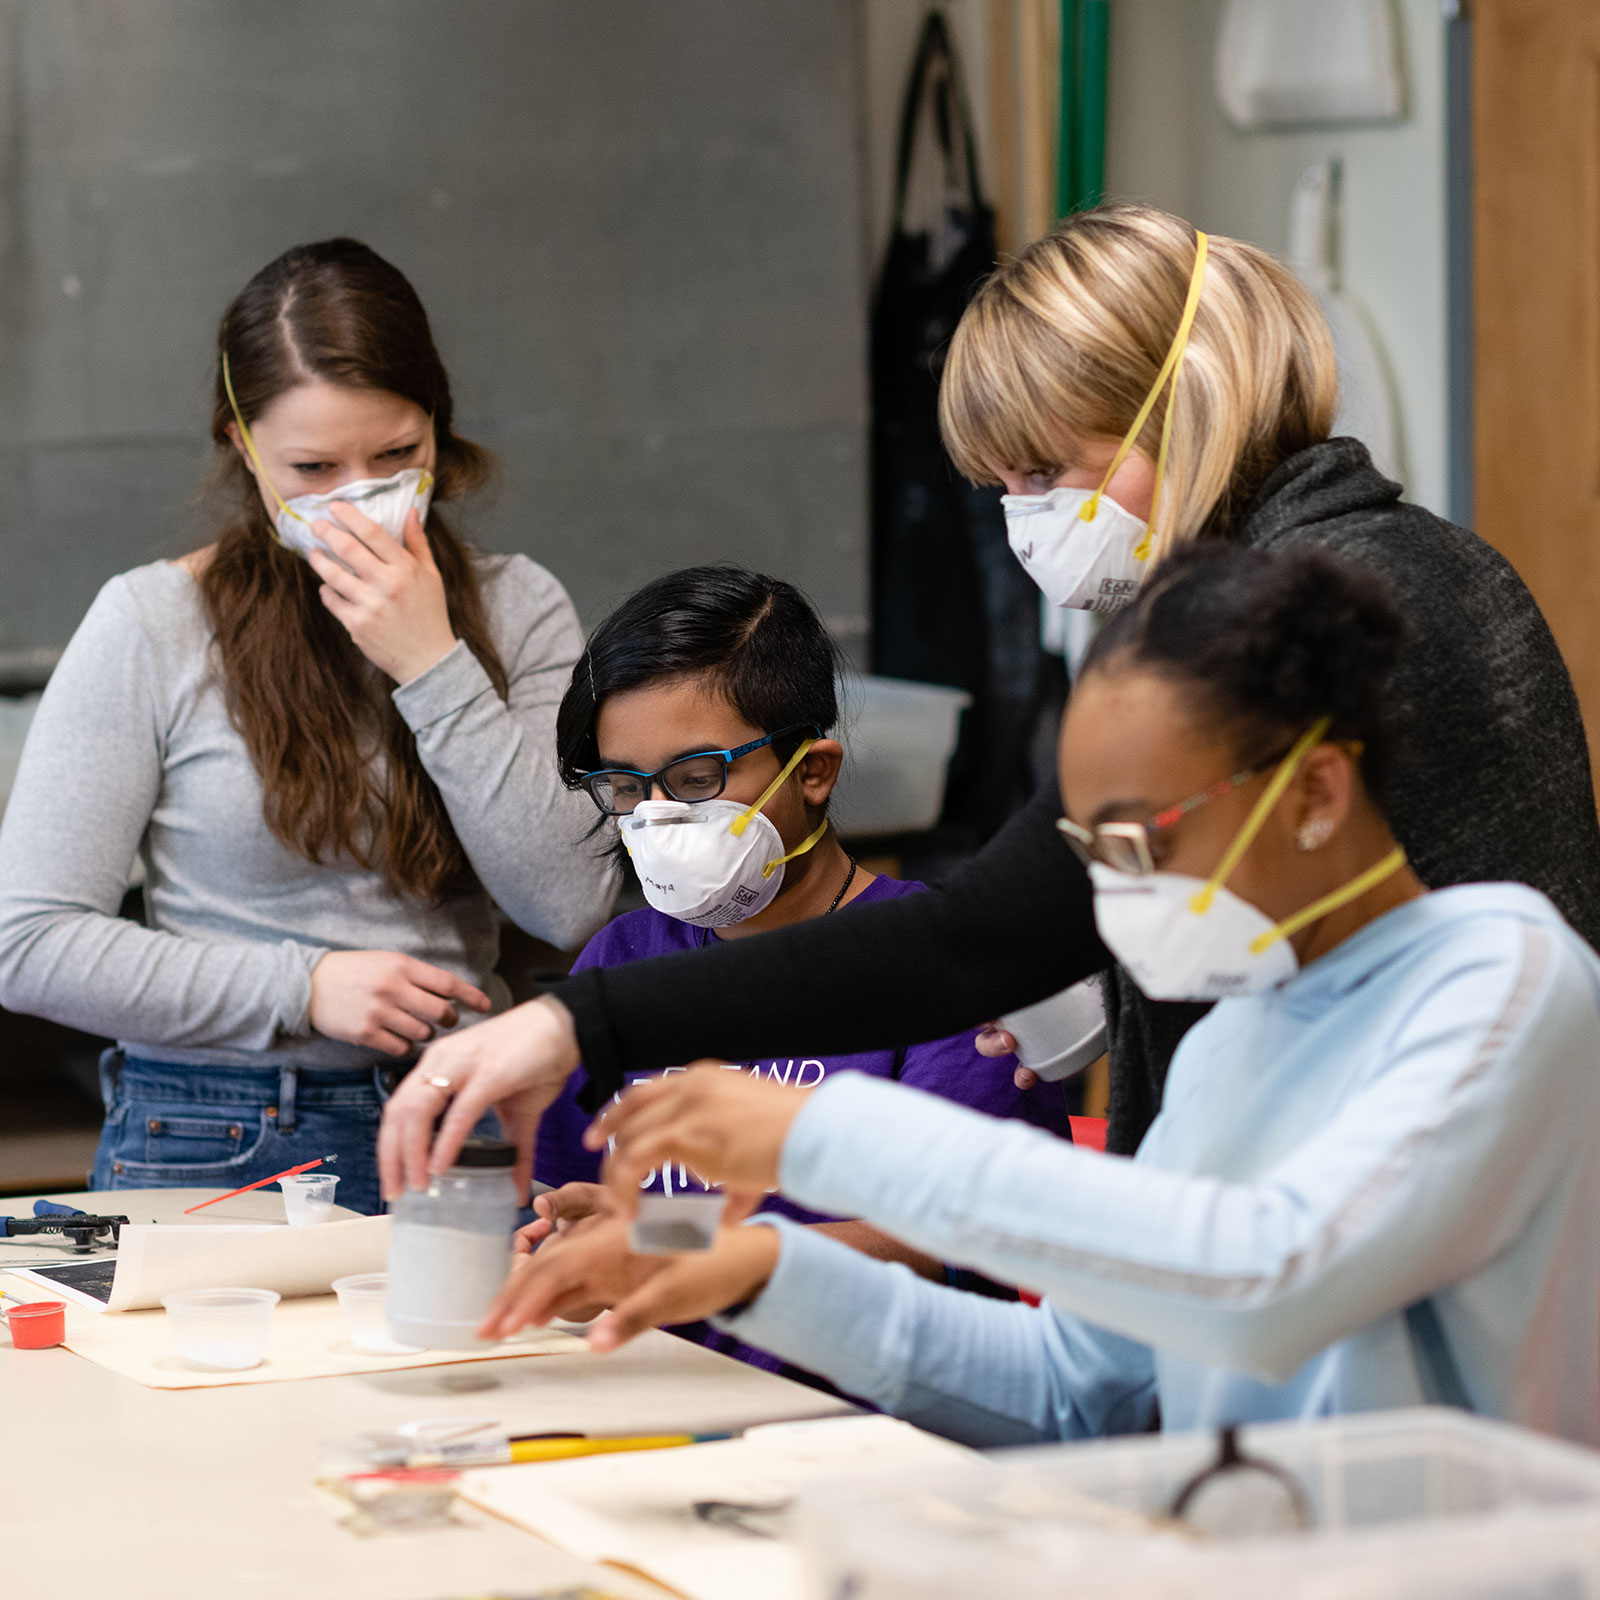 Small group activity in the kiln shop